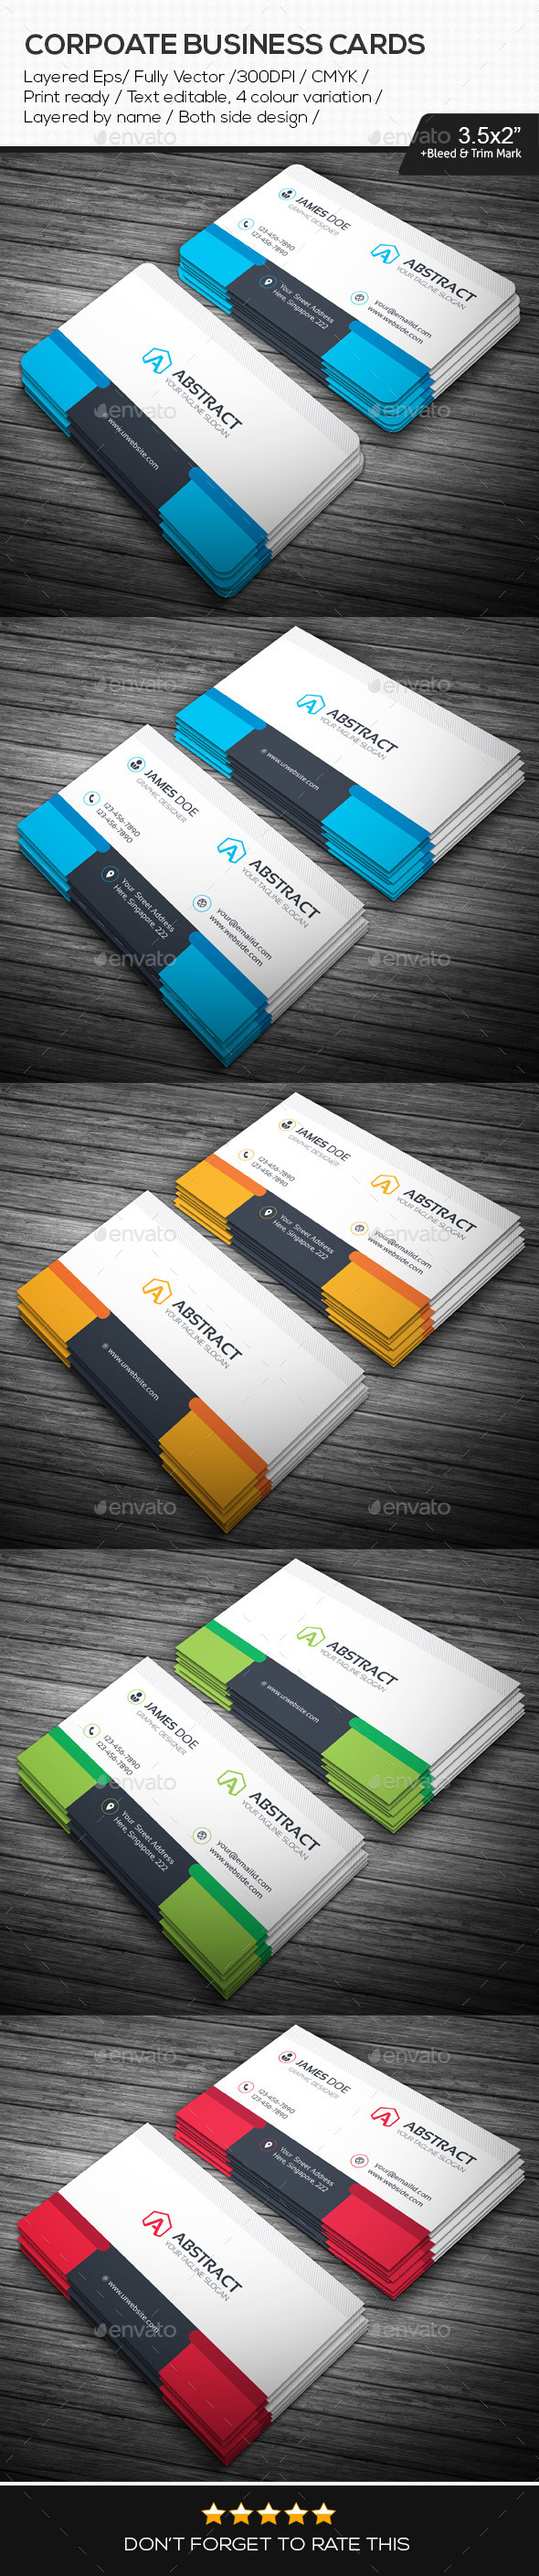 GraphicRiver Abstract Corporate Business Cards 10939258